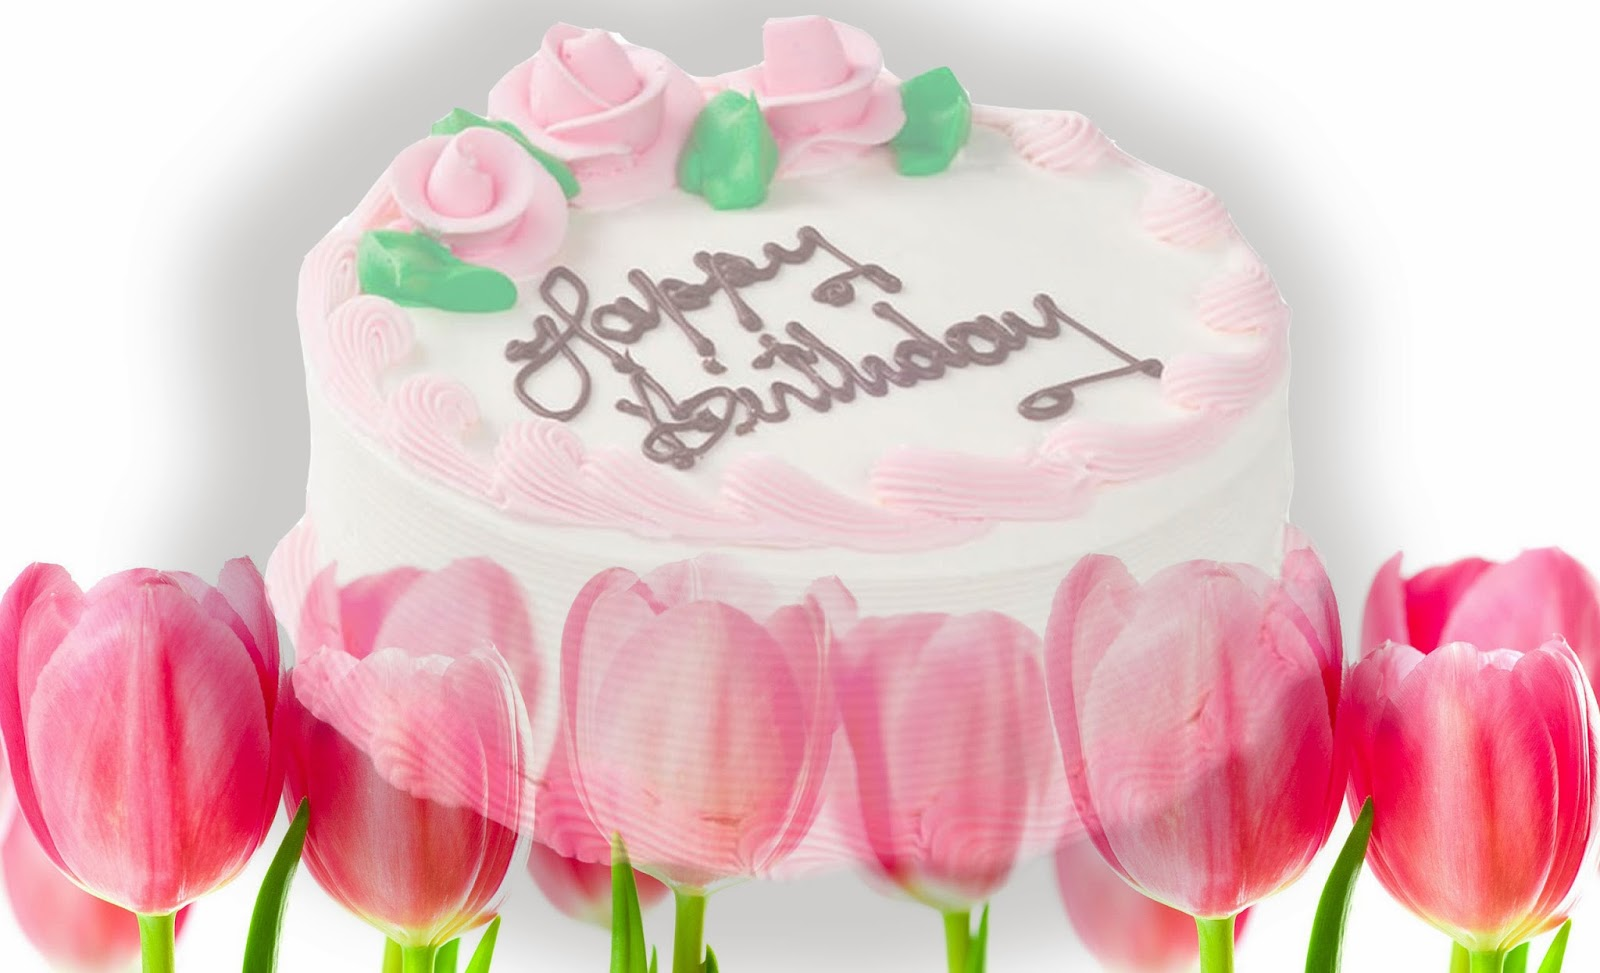 Lovable images happy birthday greetings free download cake happy happy birthday cakes wallpapers free download kristyandbryce Image collections